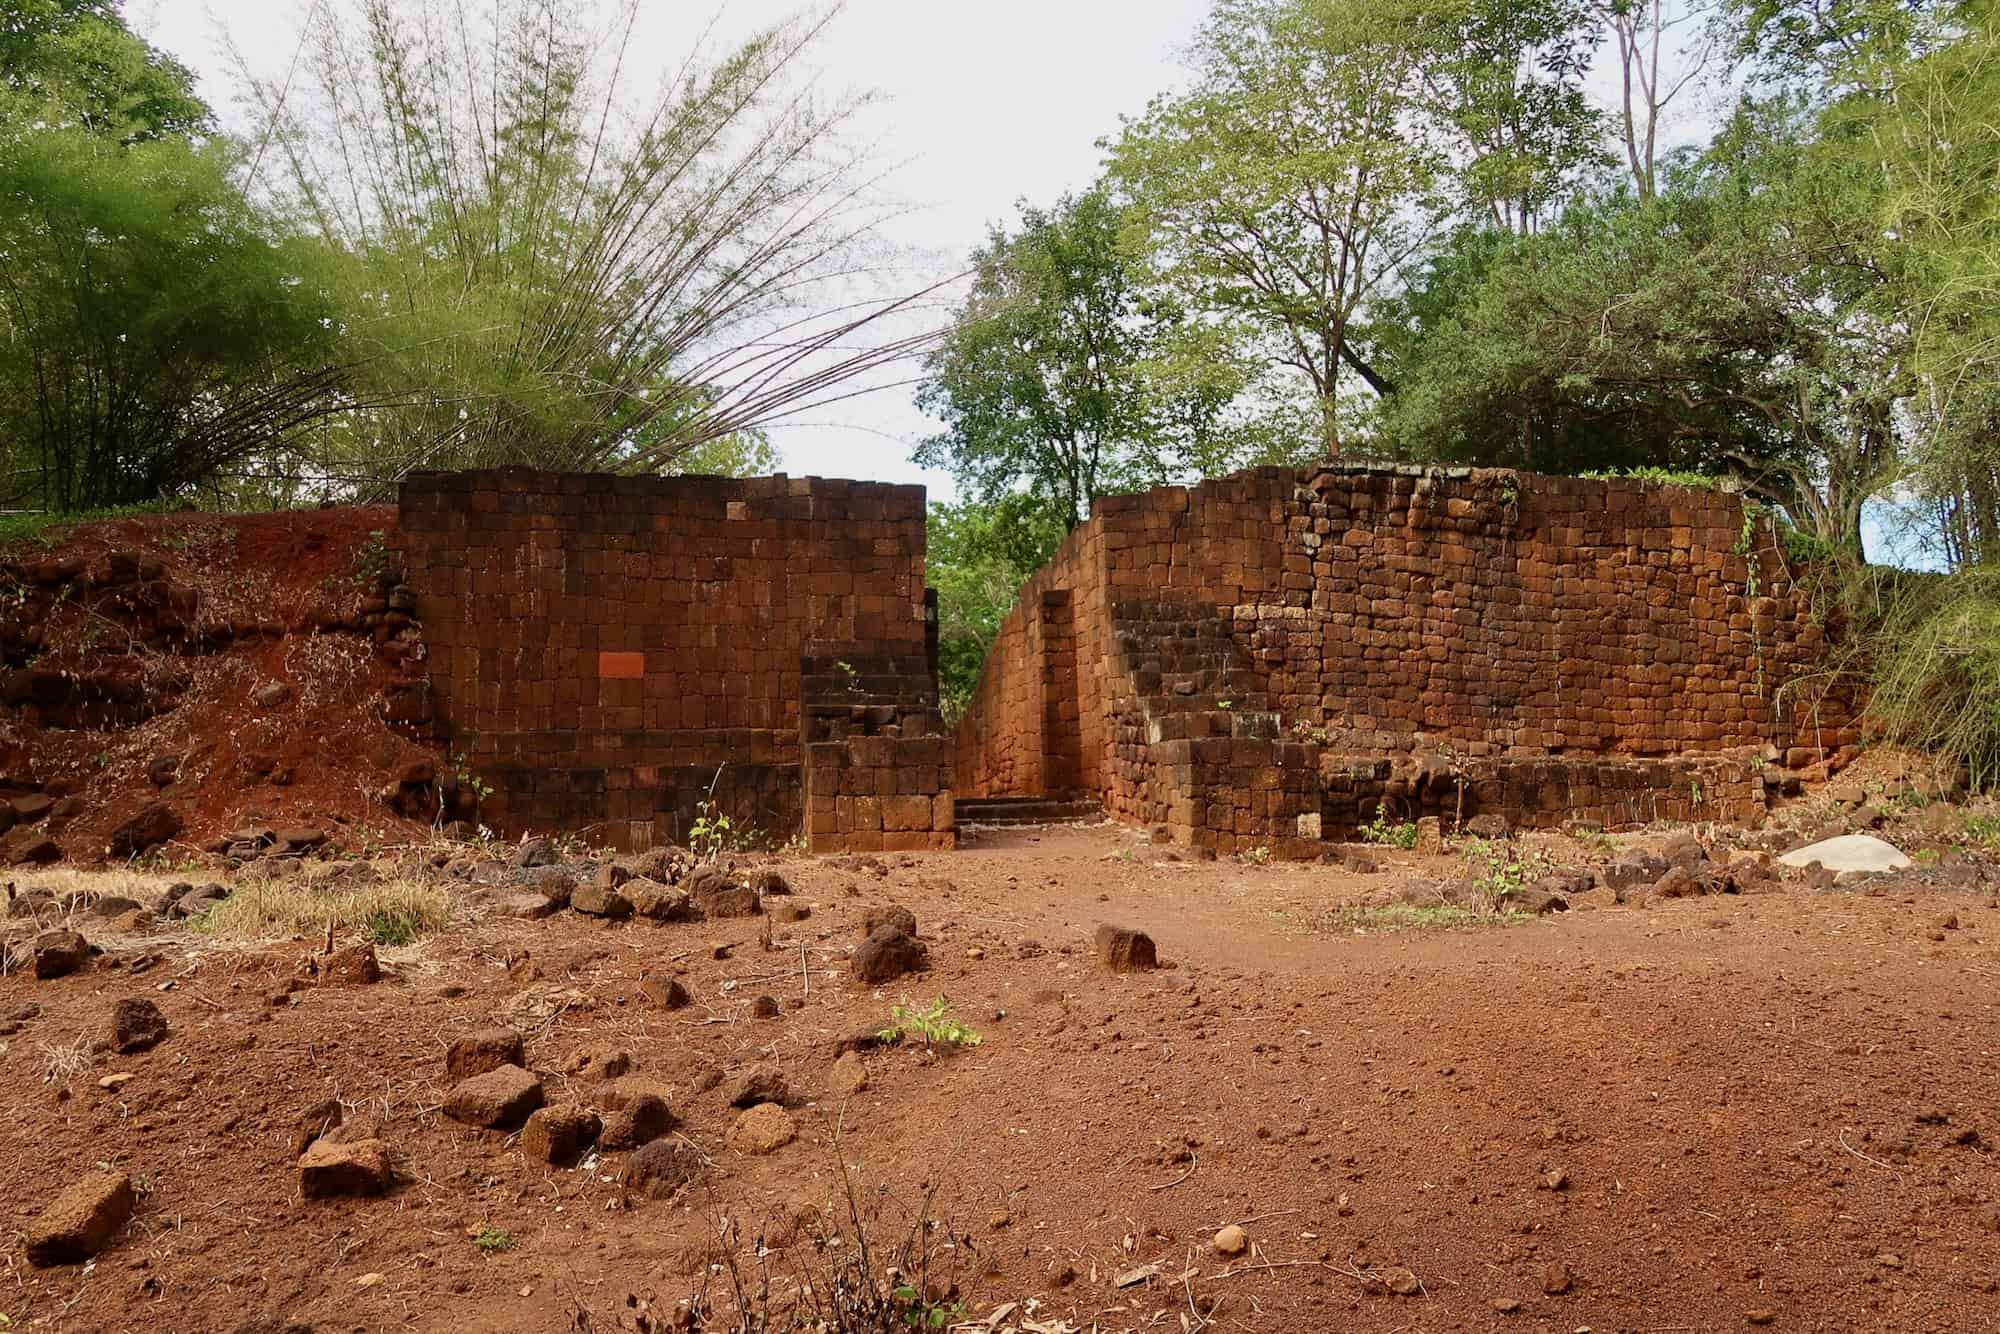 3 Lost Cities You've (probably) Never Heard Of